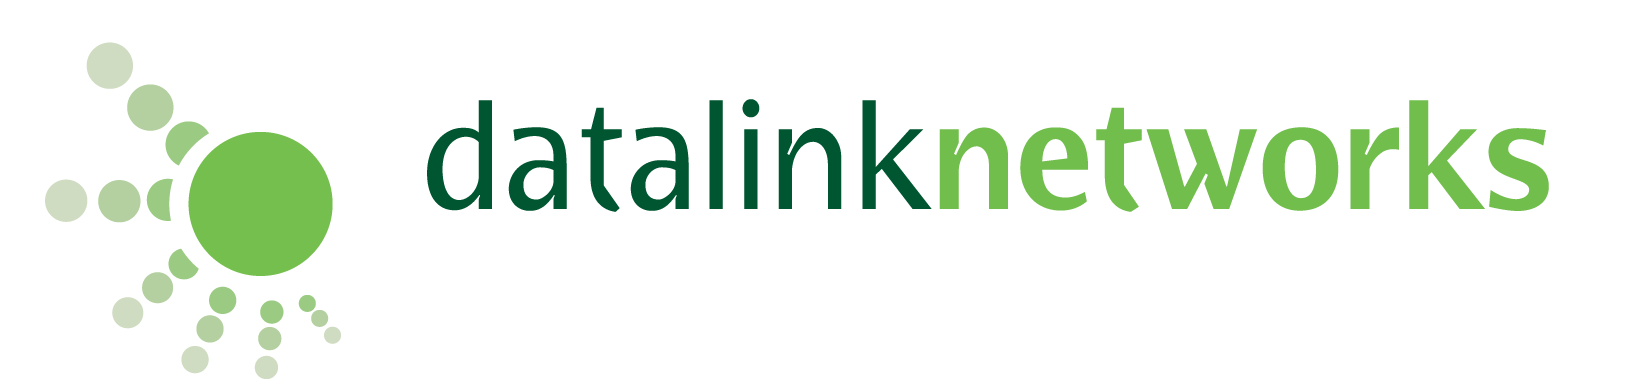 Datalink Networks: SoCal's IT Solutions Provider